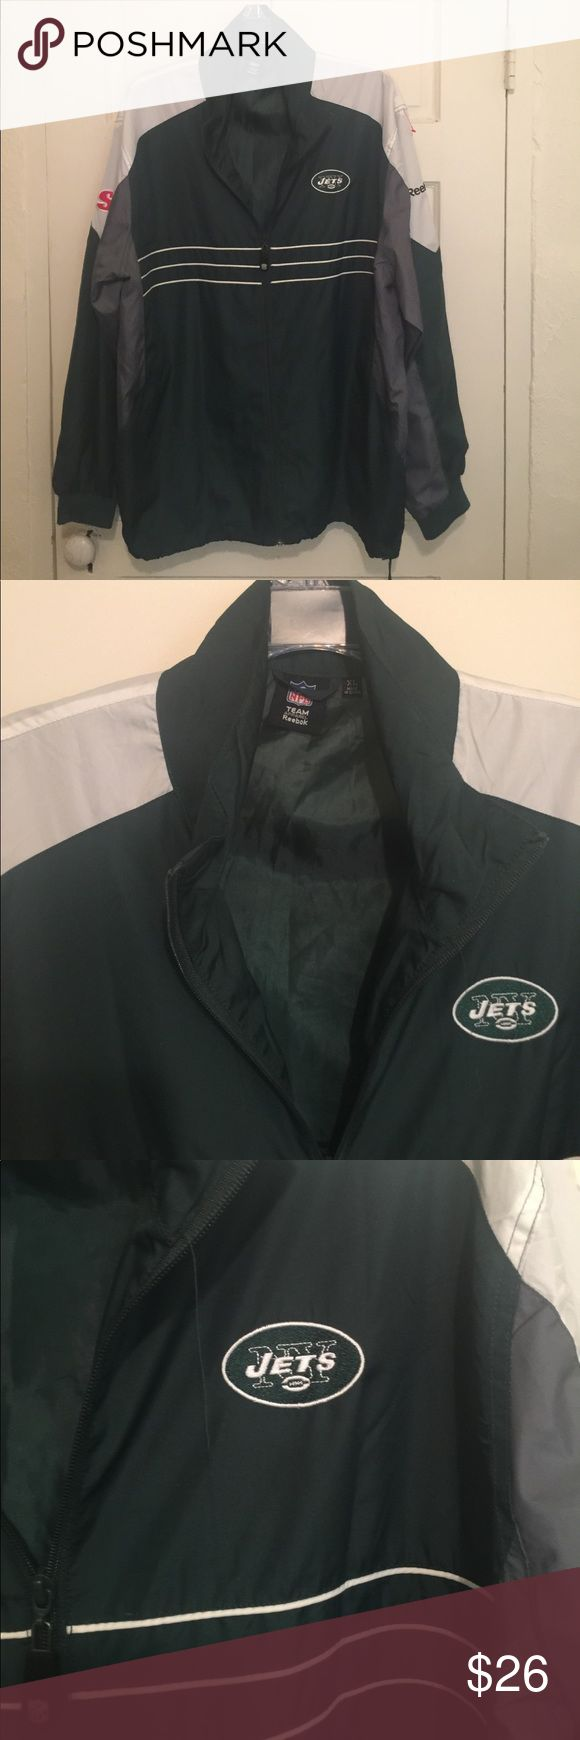 "REEBOK NFL NY JETS SI JACKET, WINDBREAKER SIZE -XL MEN'S REEBOK NFL NY JETS SI JACKET, WINDBREAKER SIZE -XL  Color: Green,Gray,White Full Zip As Well As Draw String Closure At Hem. Ribbed cuffs not just elastic sewn into a hem like the newer ones. It has the NY Jets embroidered patch sewn into the upper left chest.""  100% Polyester 100% Polyester Lining Measurements Where Taken With Jacket Laying Flat: Size- XL  Armpit To Armpit : 26.5"" Length From Shoulder To Hem : 30.5"" Sleeve Length…"